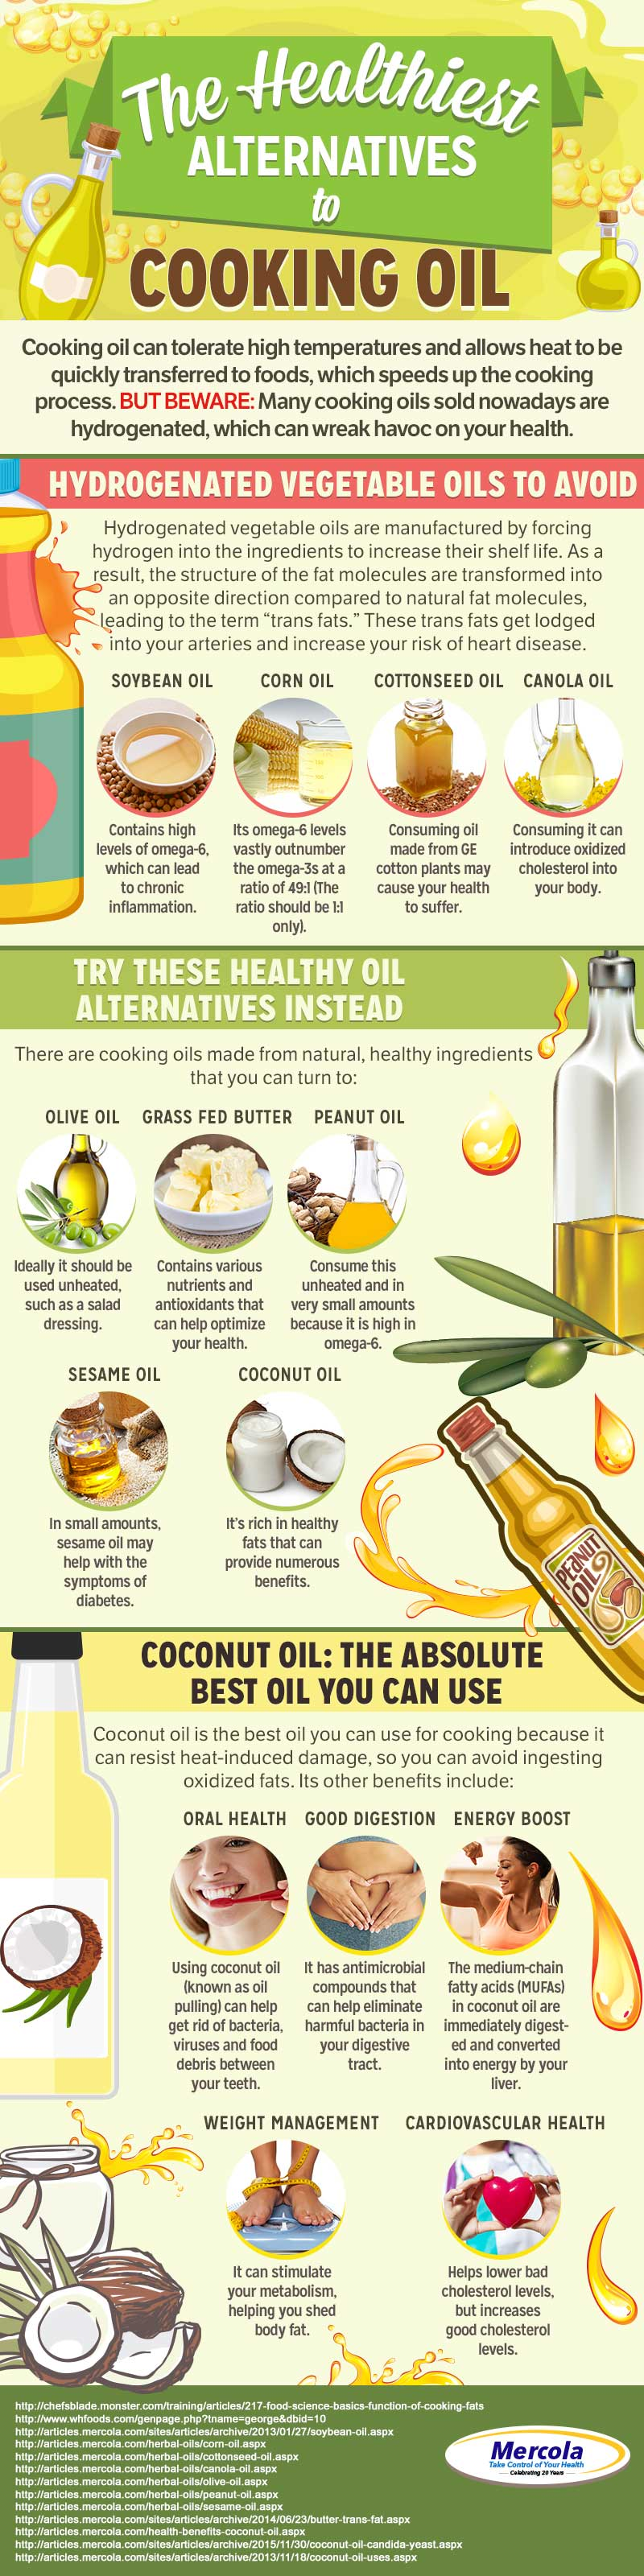 Healthiest Cooking Oil Infographic